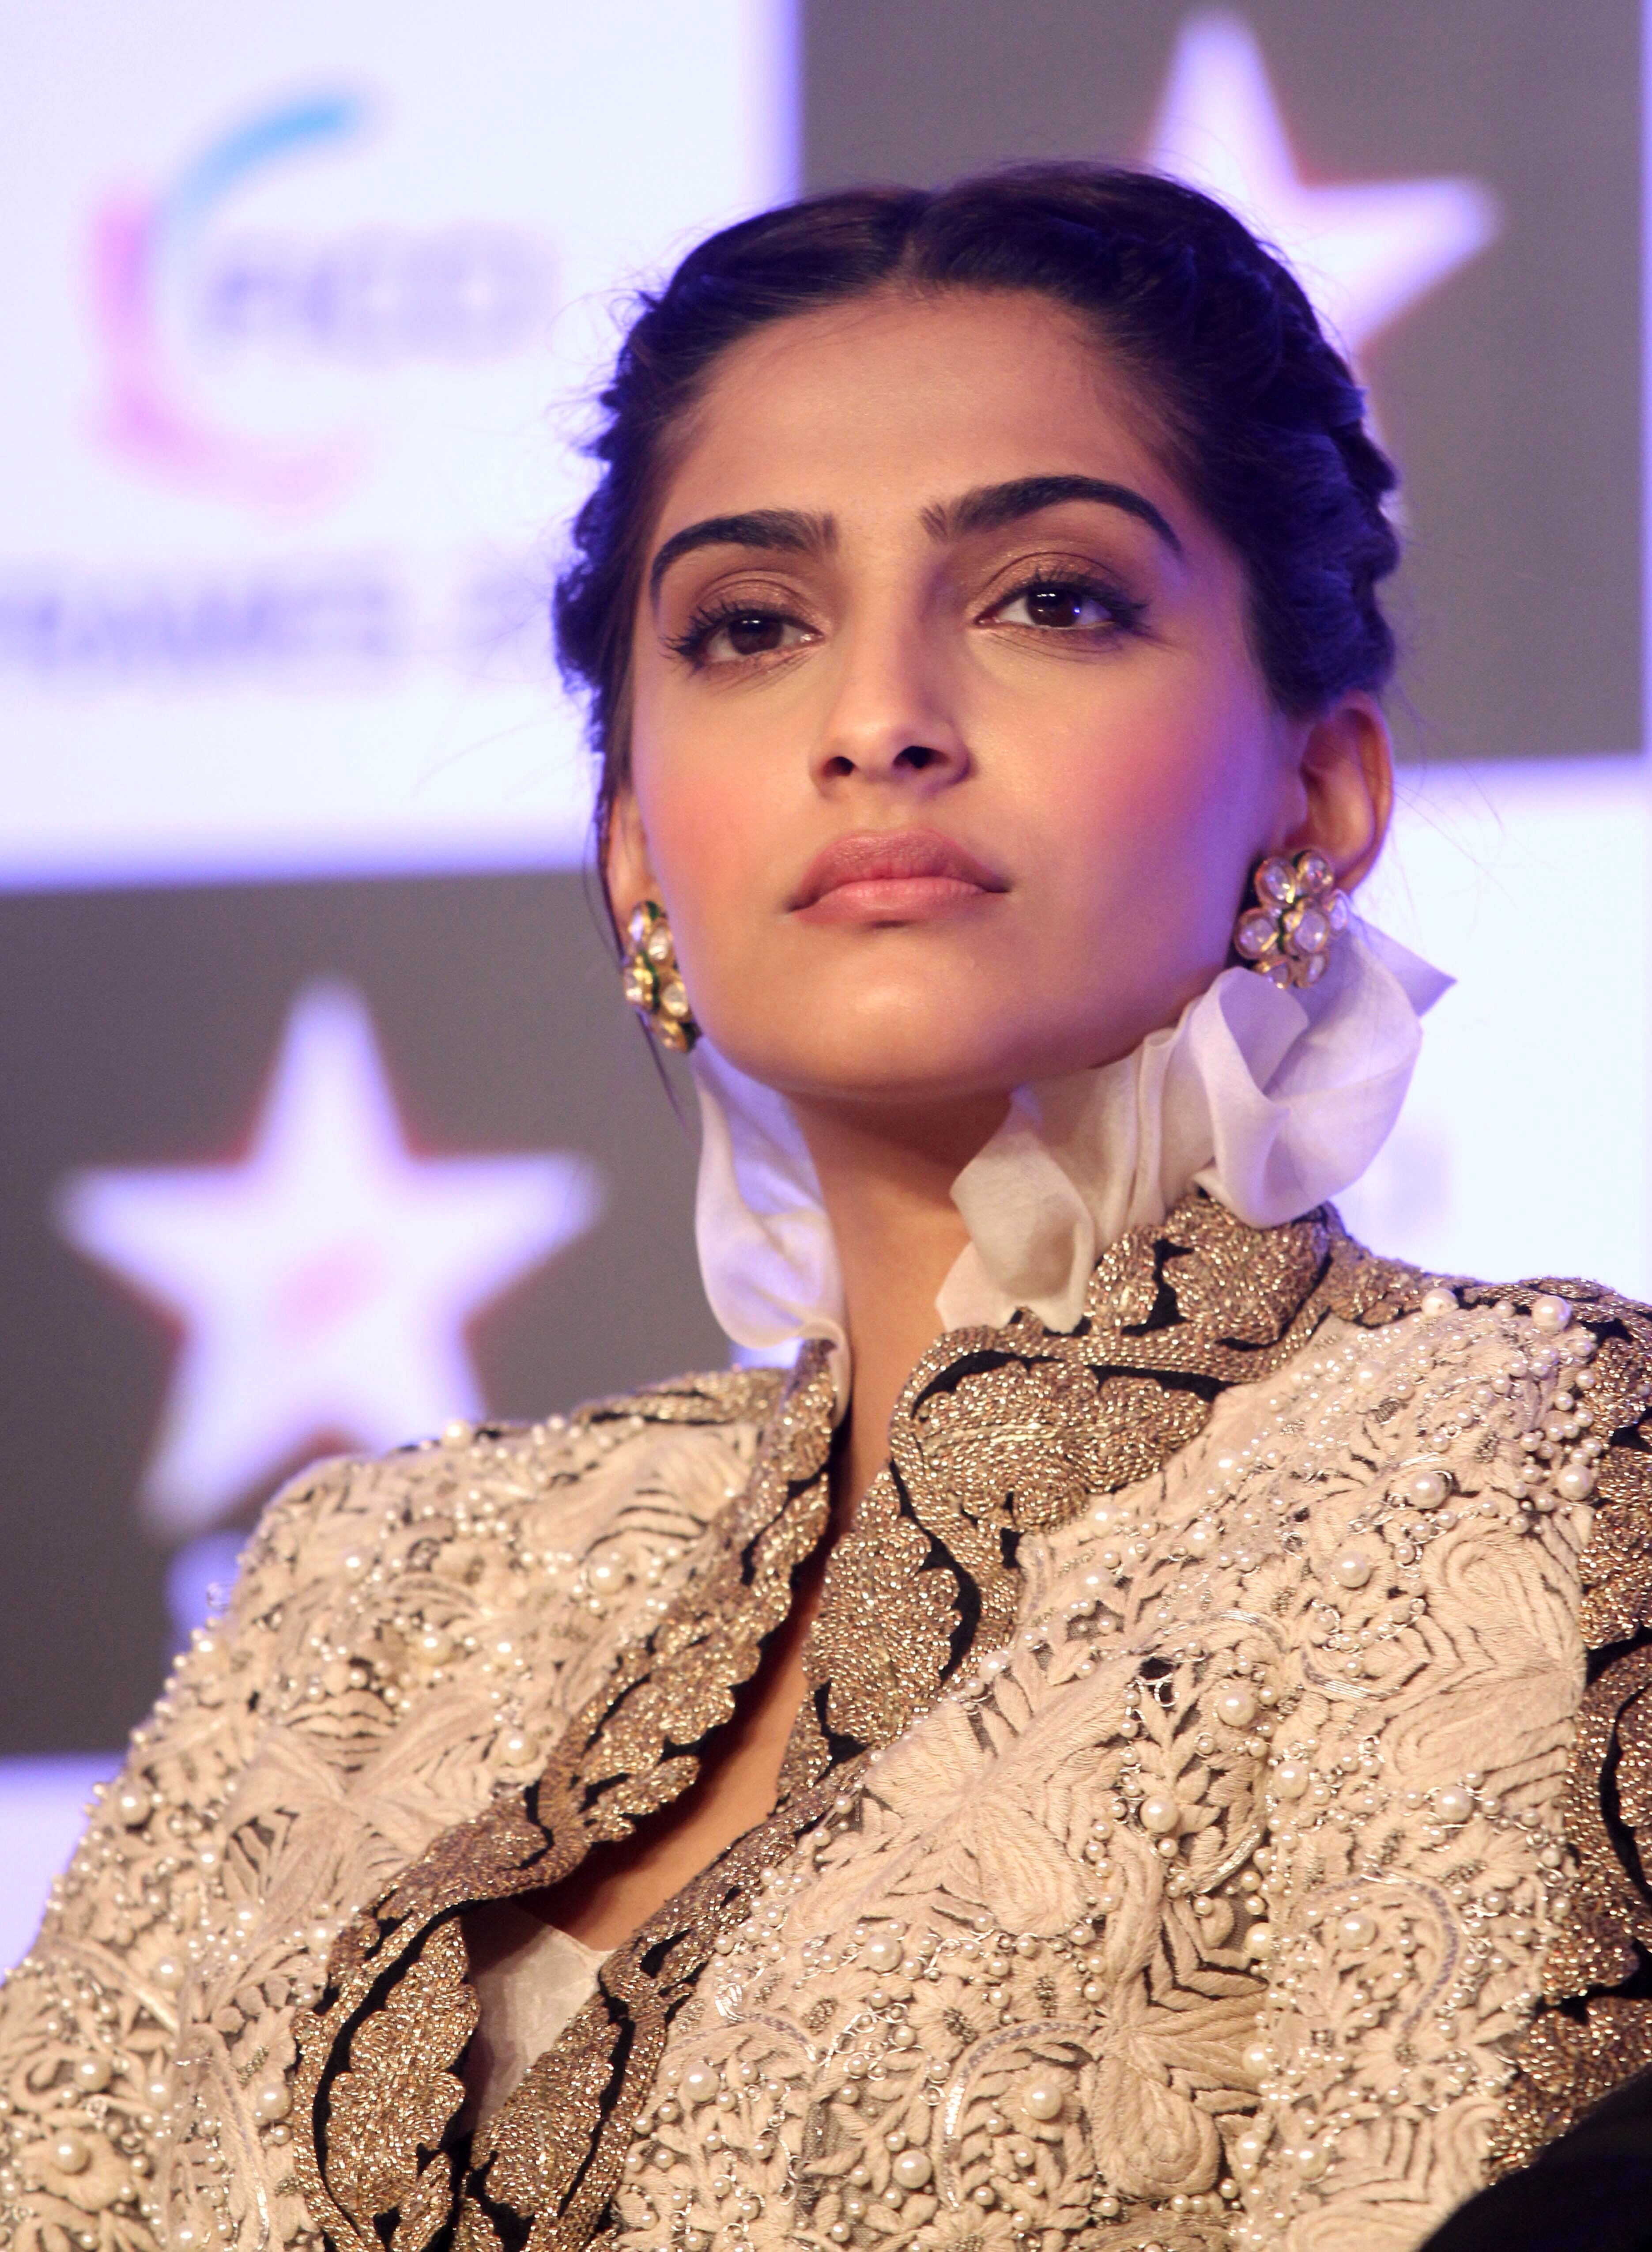 beauriful sonam kapoor hot in bikini pictures photoshoot